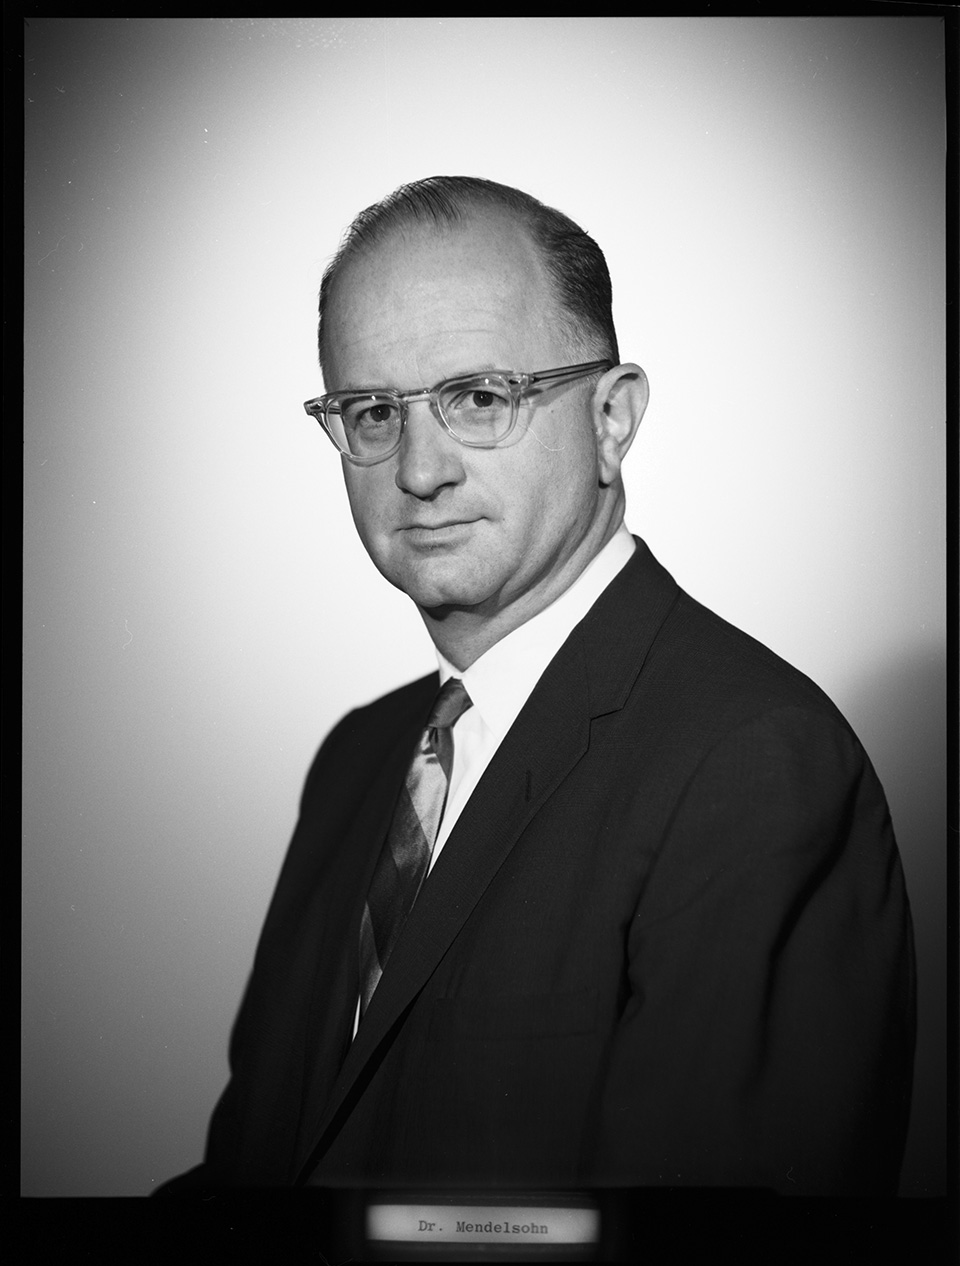 Close-up/headshot of R.S. Mendelsohn in a suit, with his body turned slightly to the side and looking directly at the camera